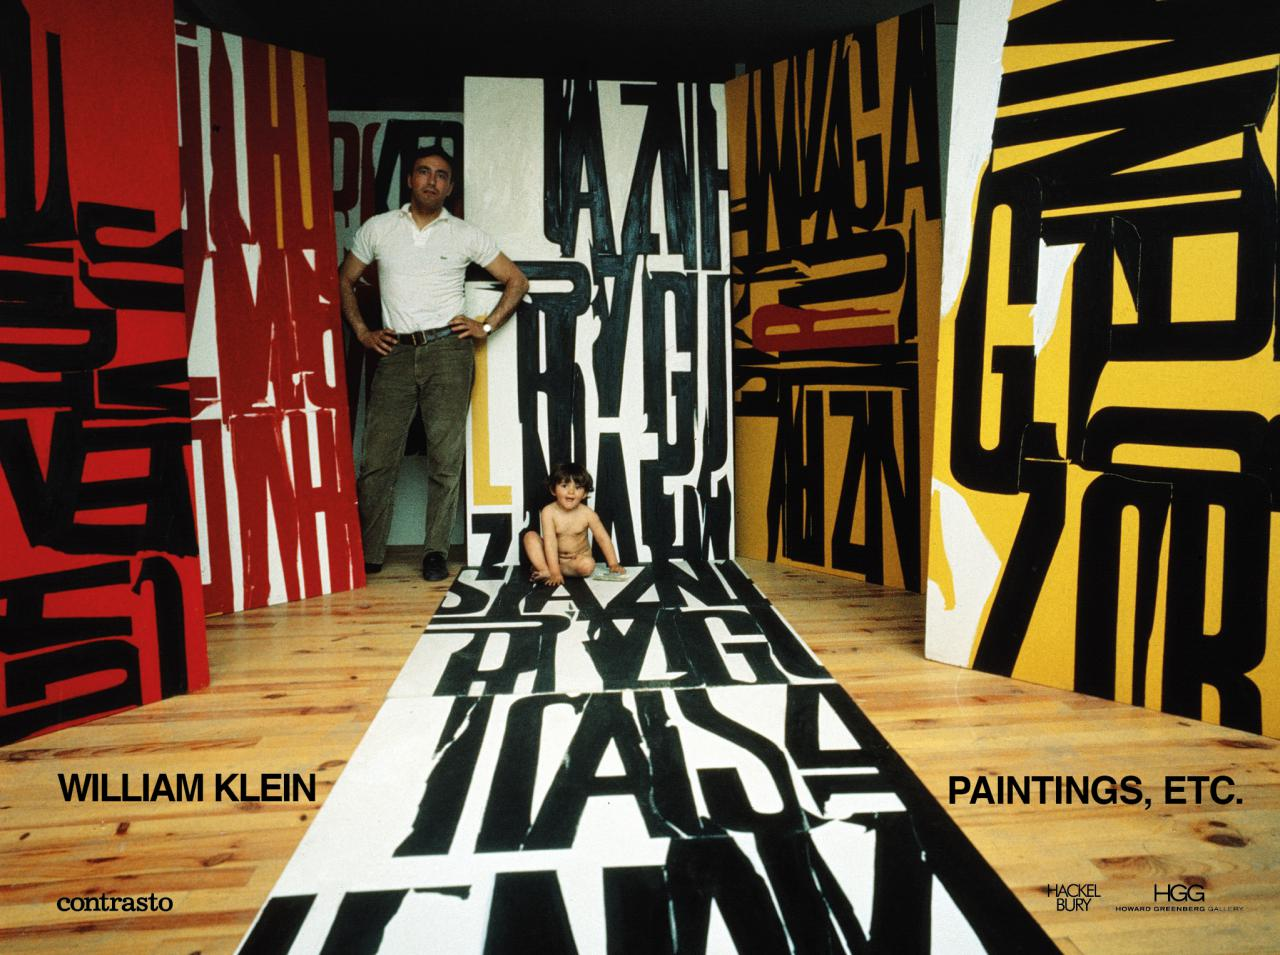 William Klein: Paintings, etc.